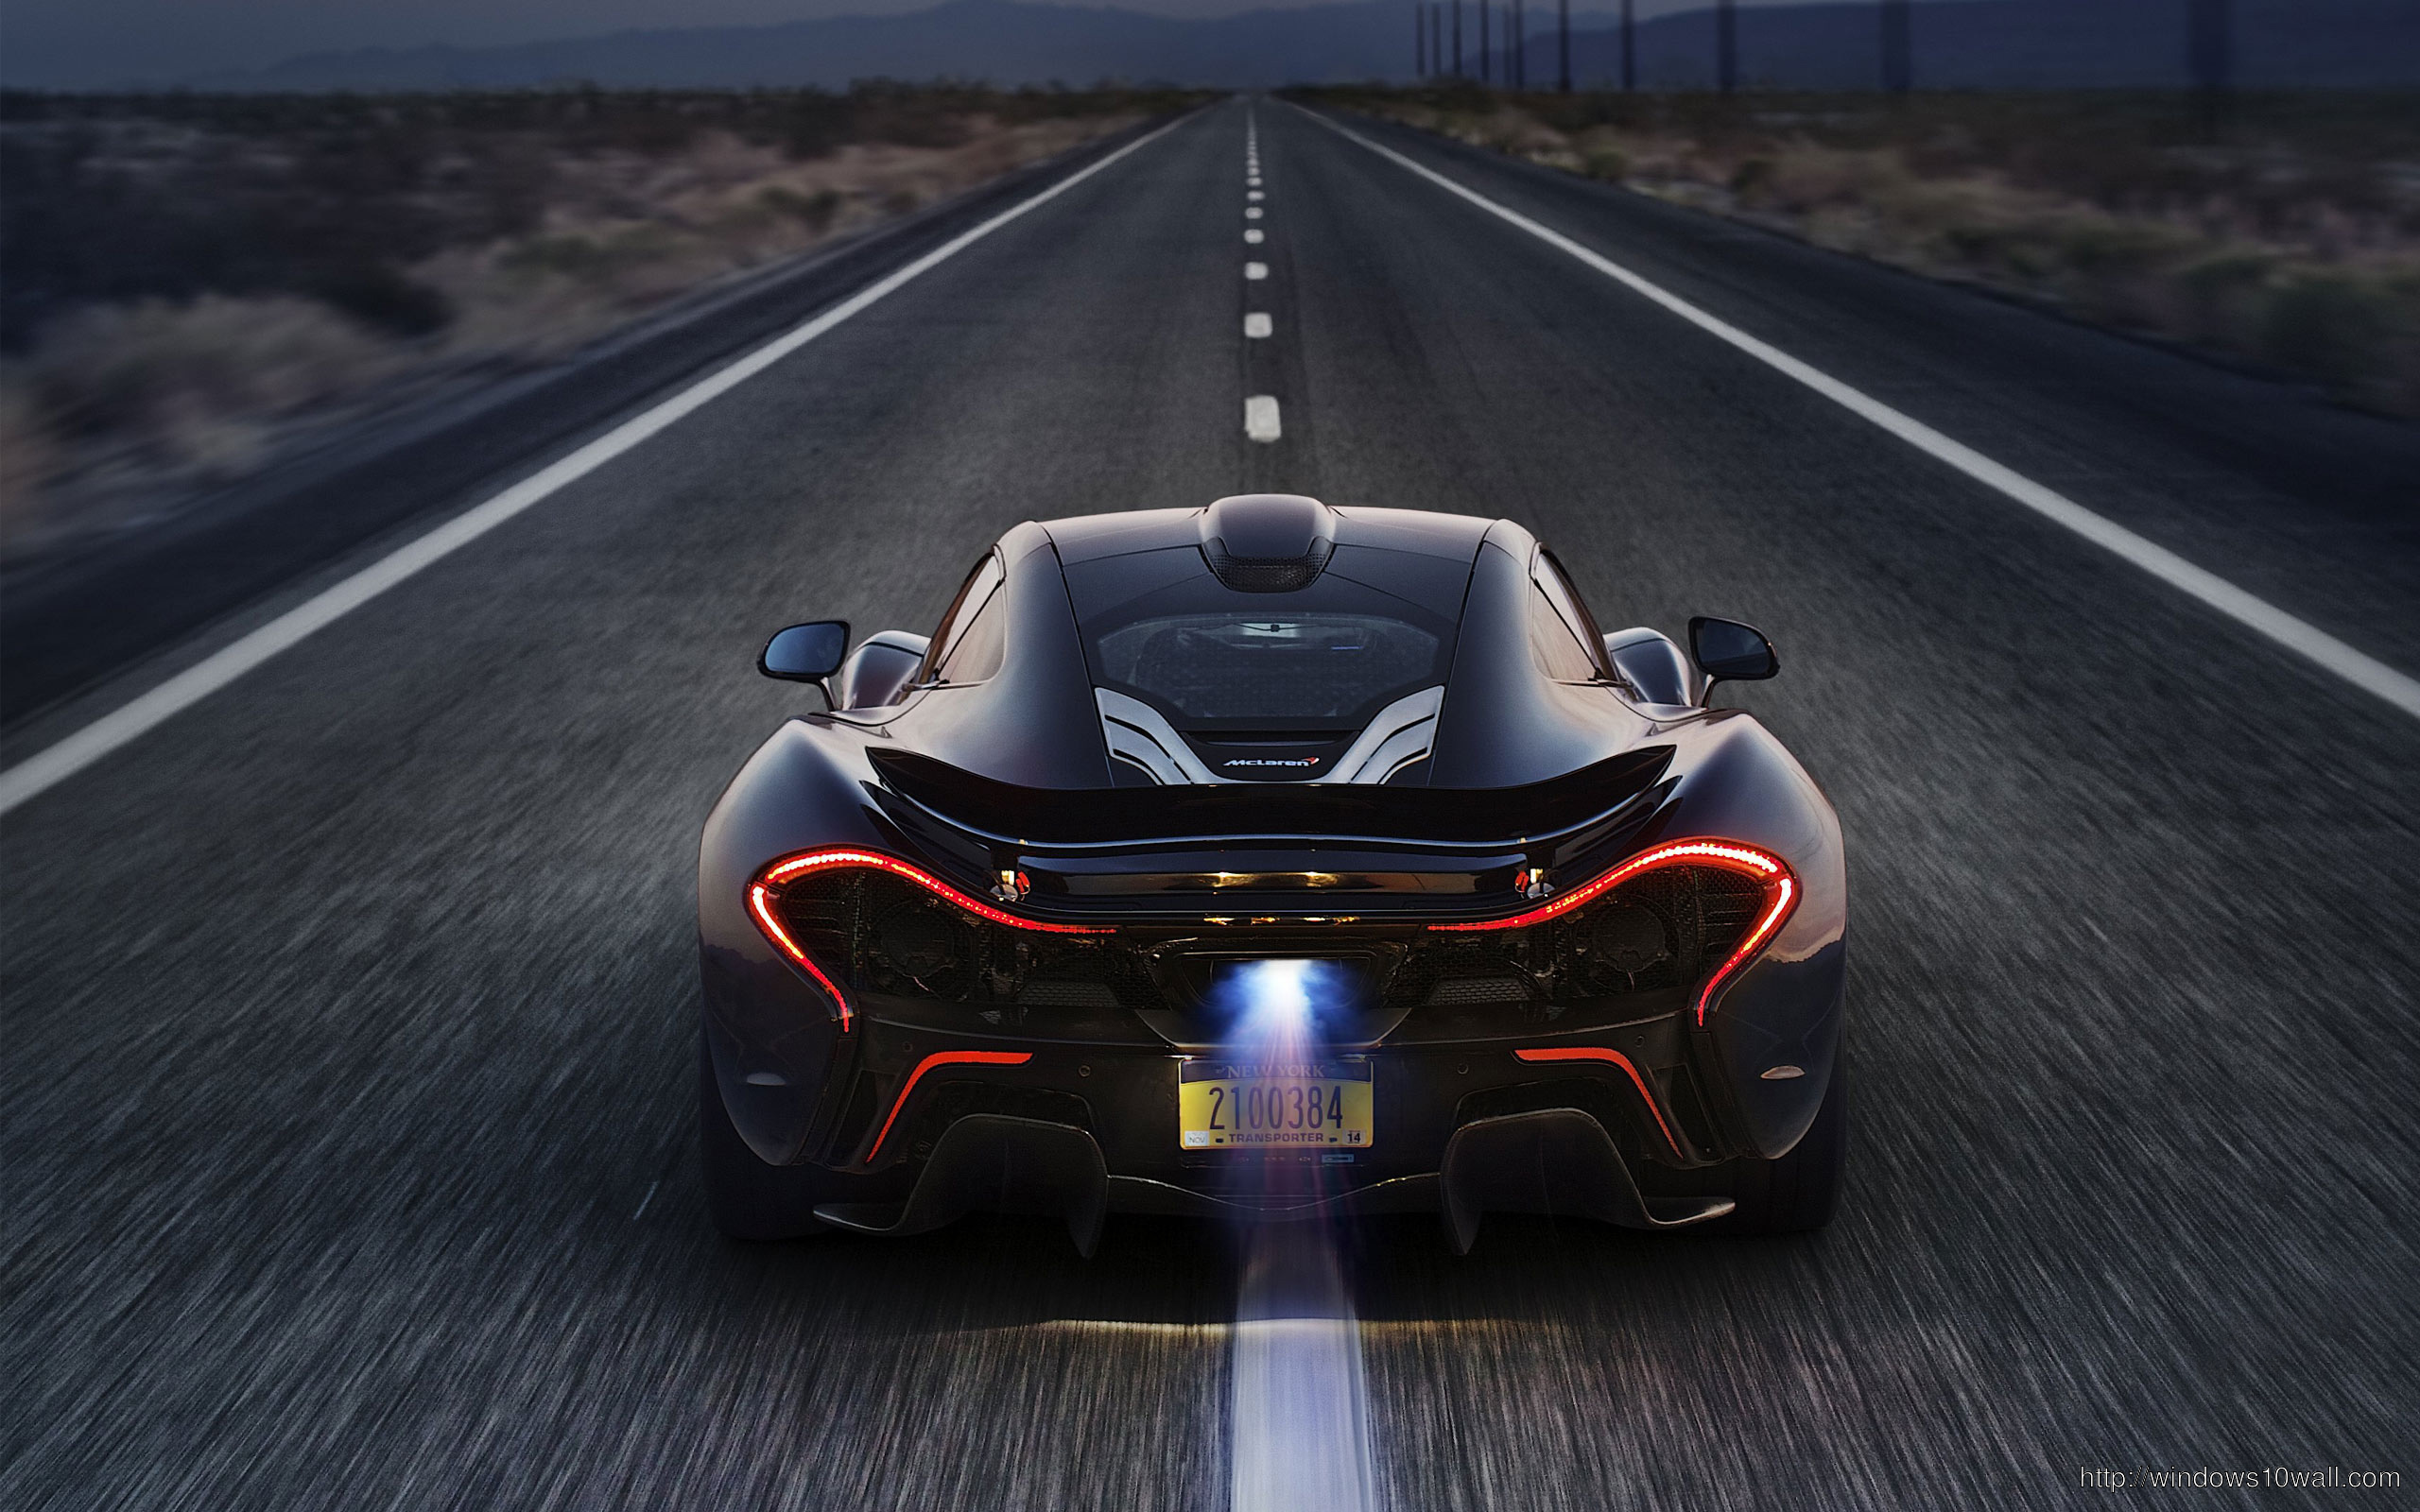 On Road Stunning McLaren P1 2014 Background Wallpaper